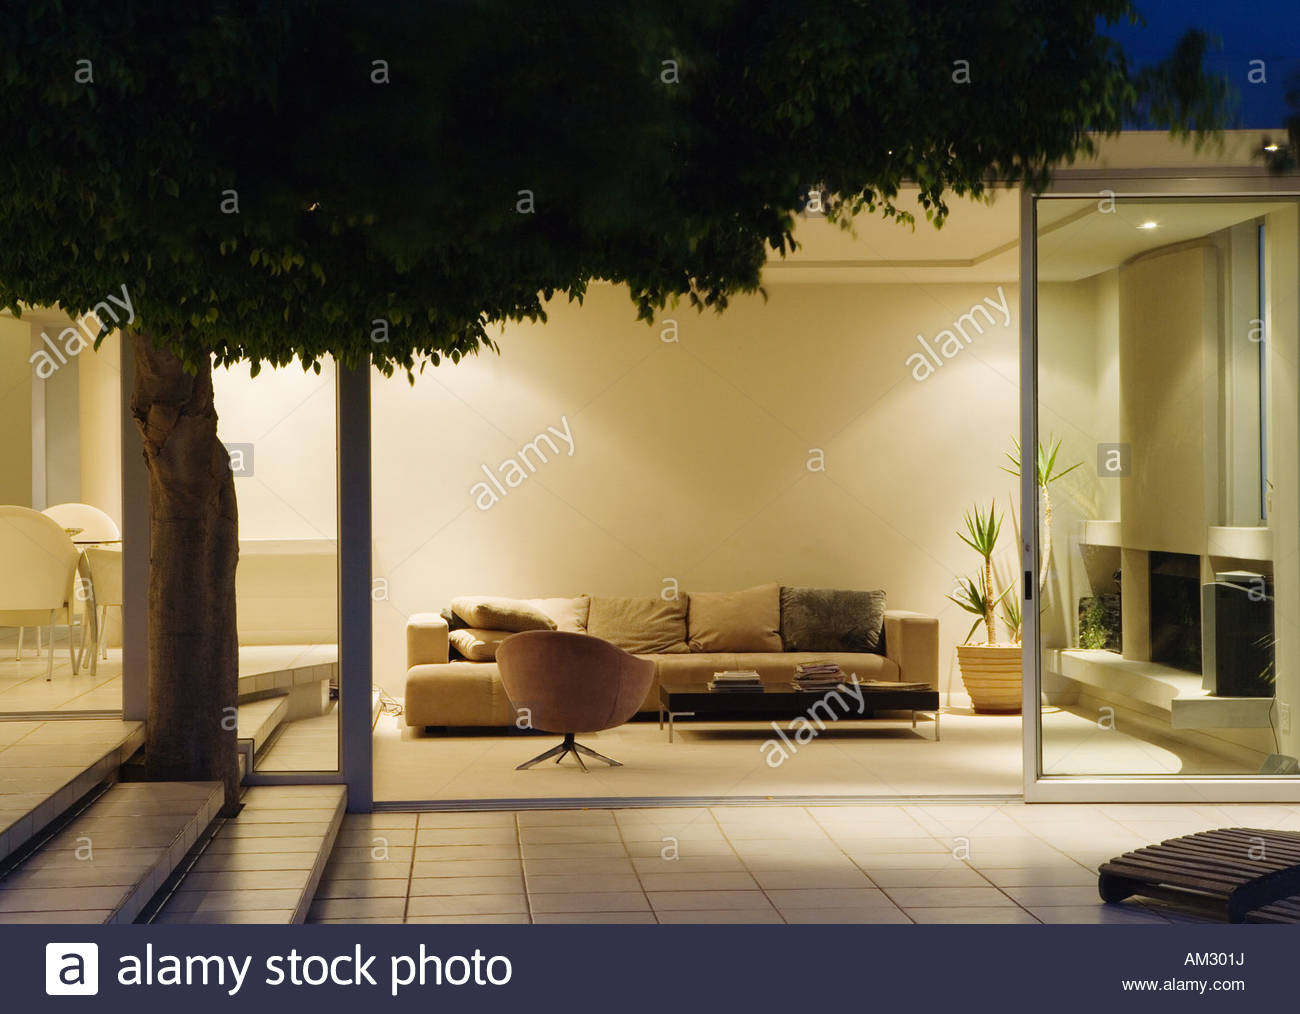 Modern living room and patio with sliding glass walls for Sliding glass walls for patios